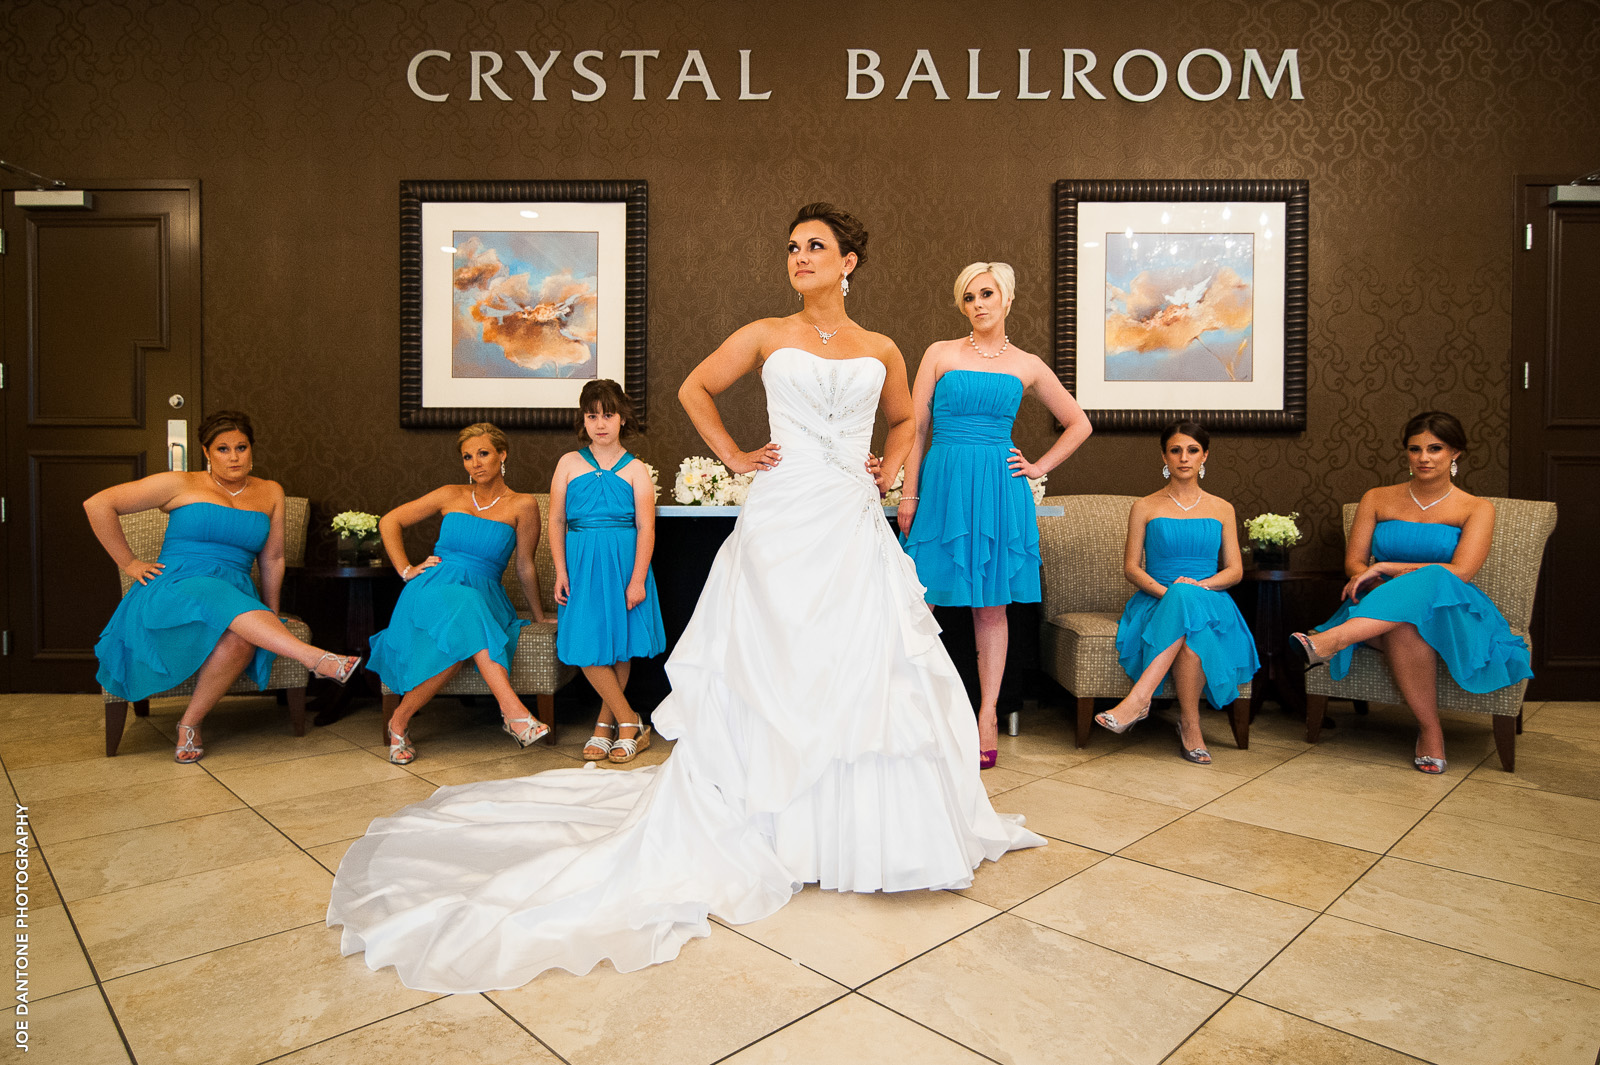 Crystal Ballroom Of The Radisson Hotel Freehold For Weddings And Events 1